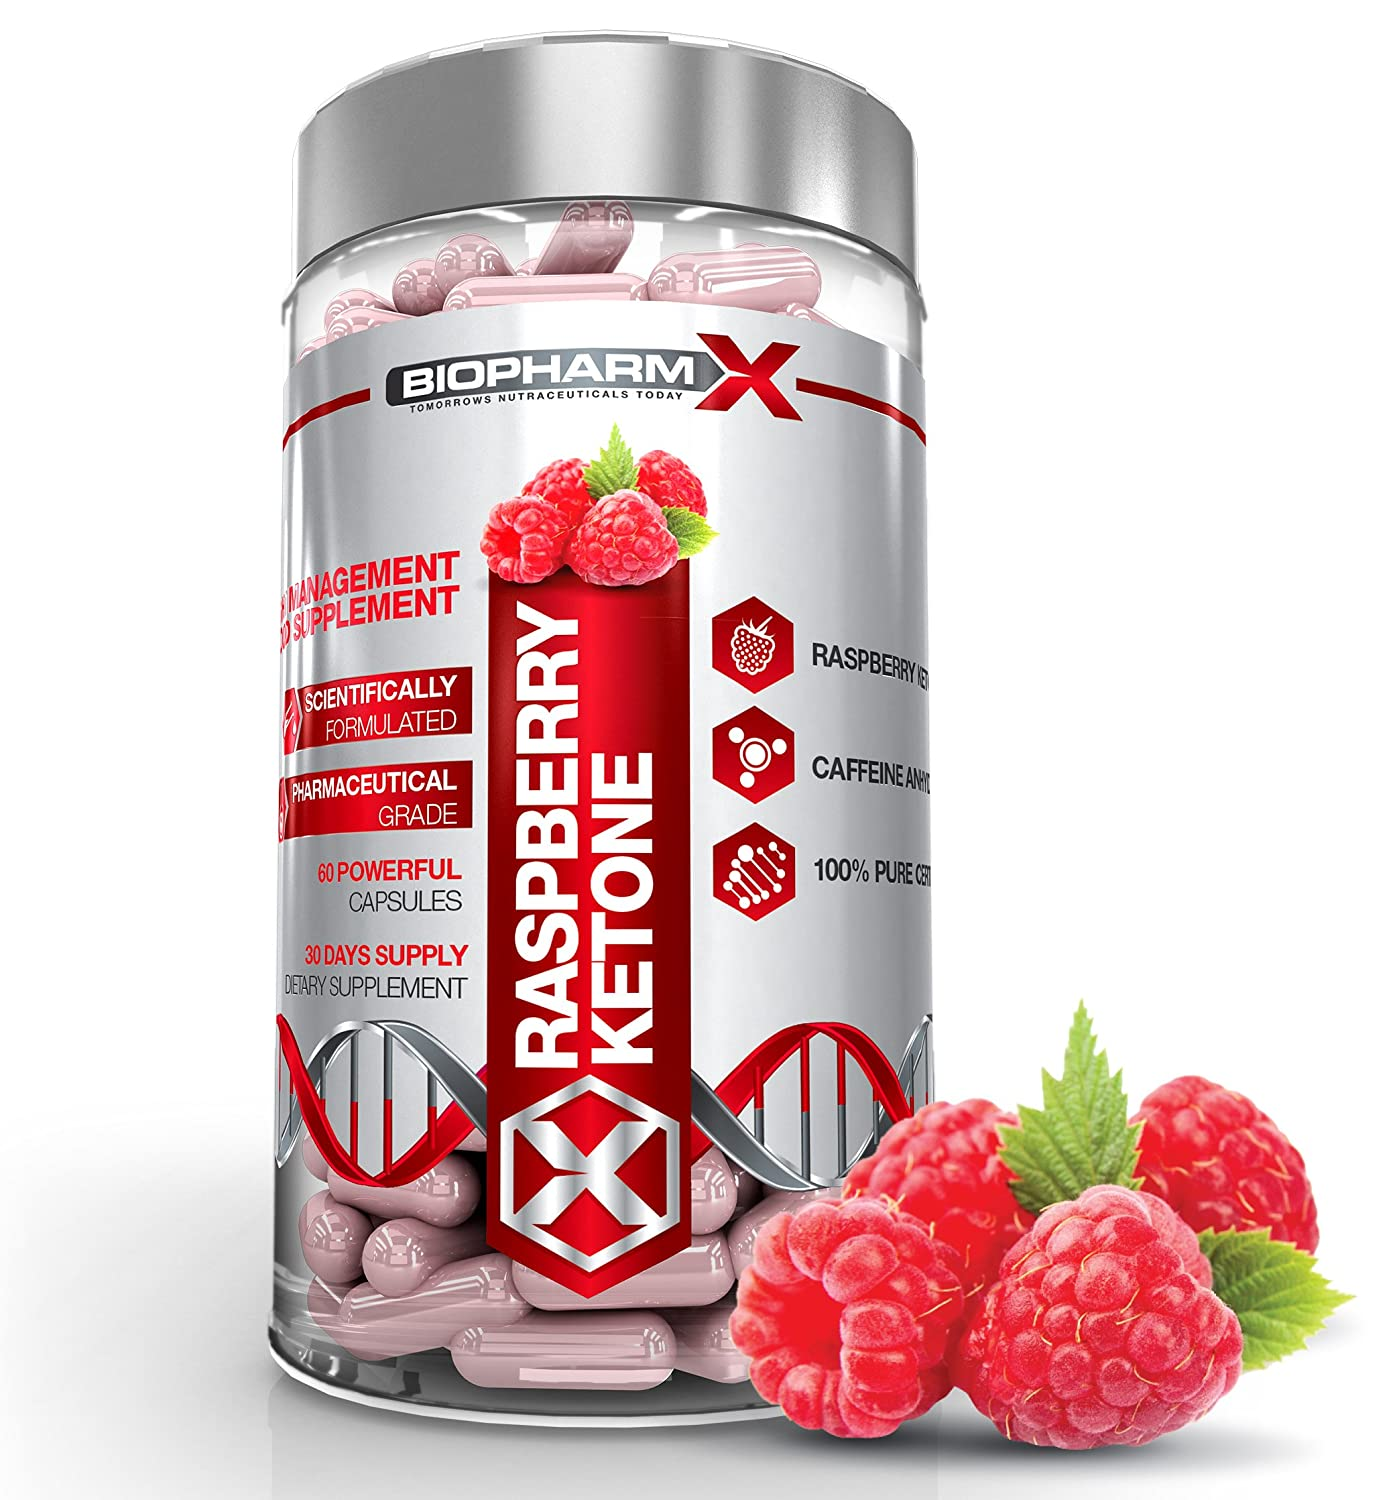 Biopharm X Natural Raspberry Ketone Extract Diet Pills Weight Loss Slimming Pills 60 Capsules 1 Month Supply